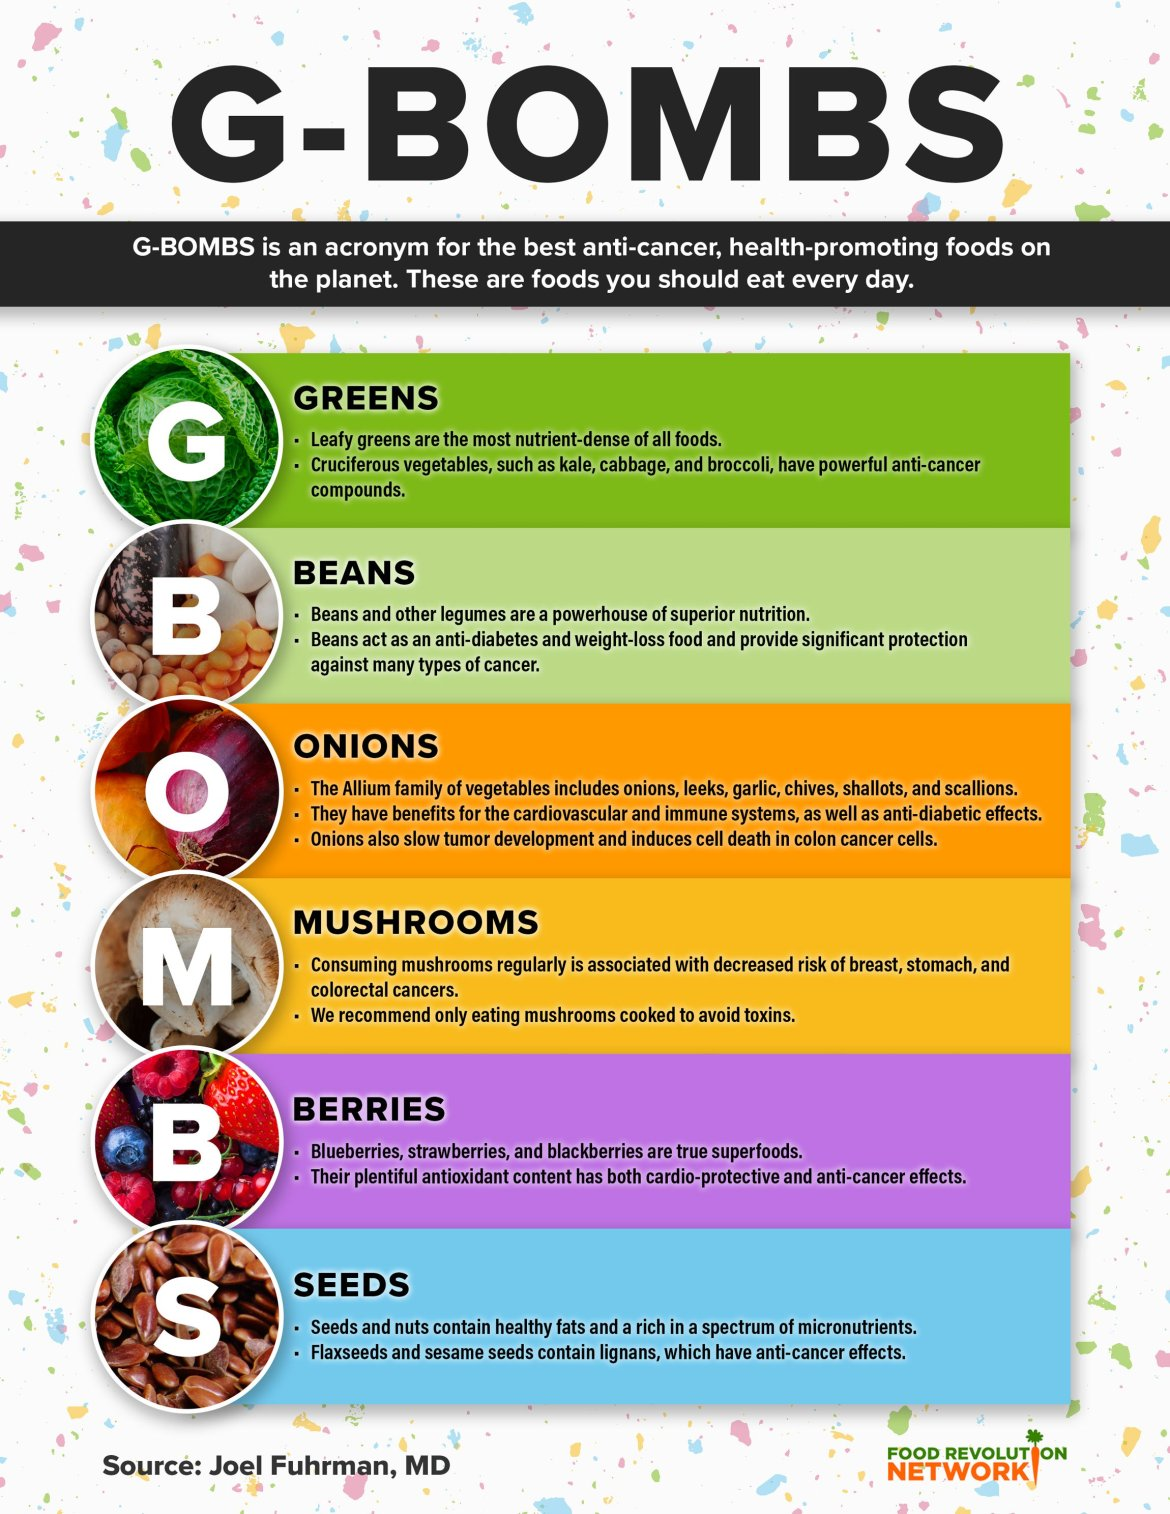 GBOMBS infographic - the best anti-cancer, health-promoting foods on the planet